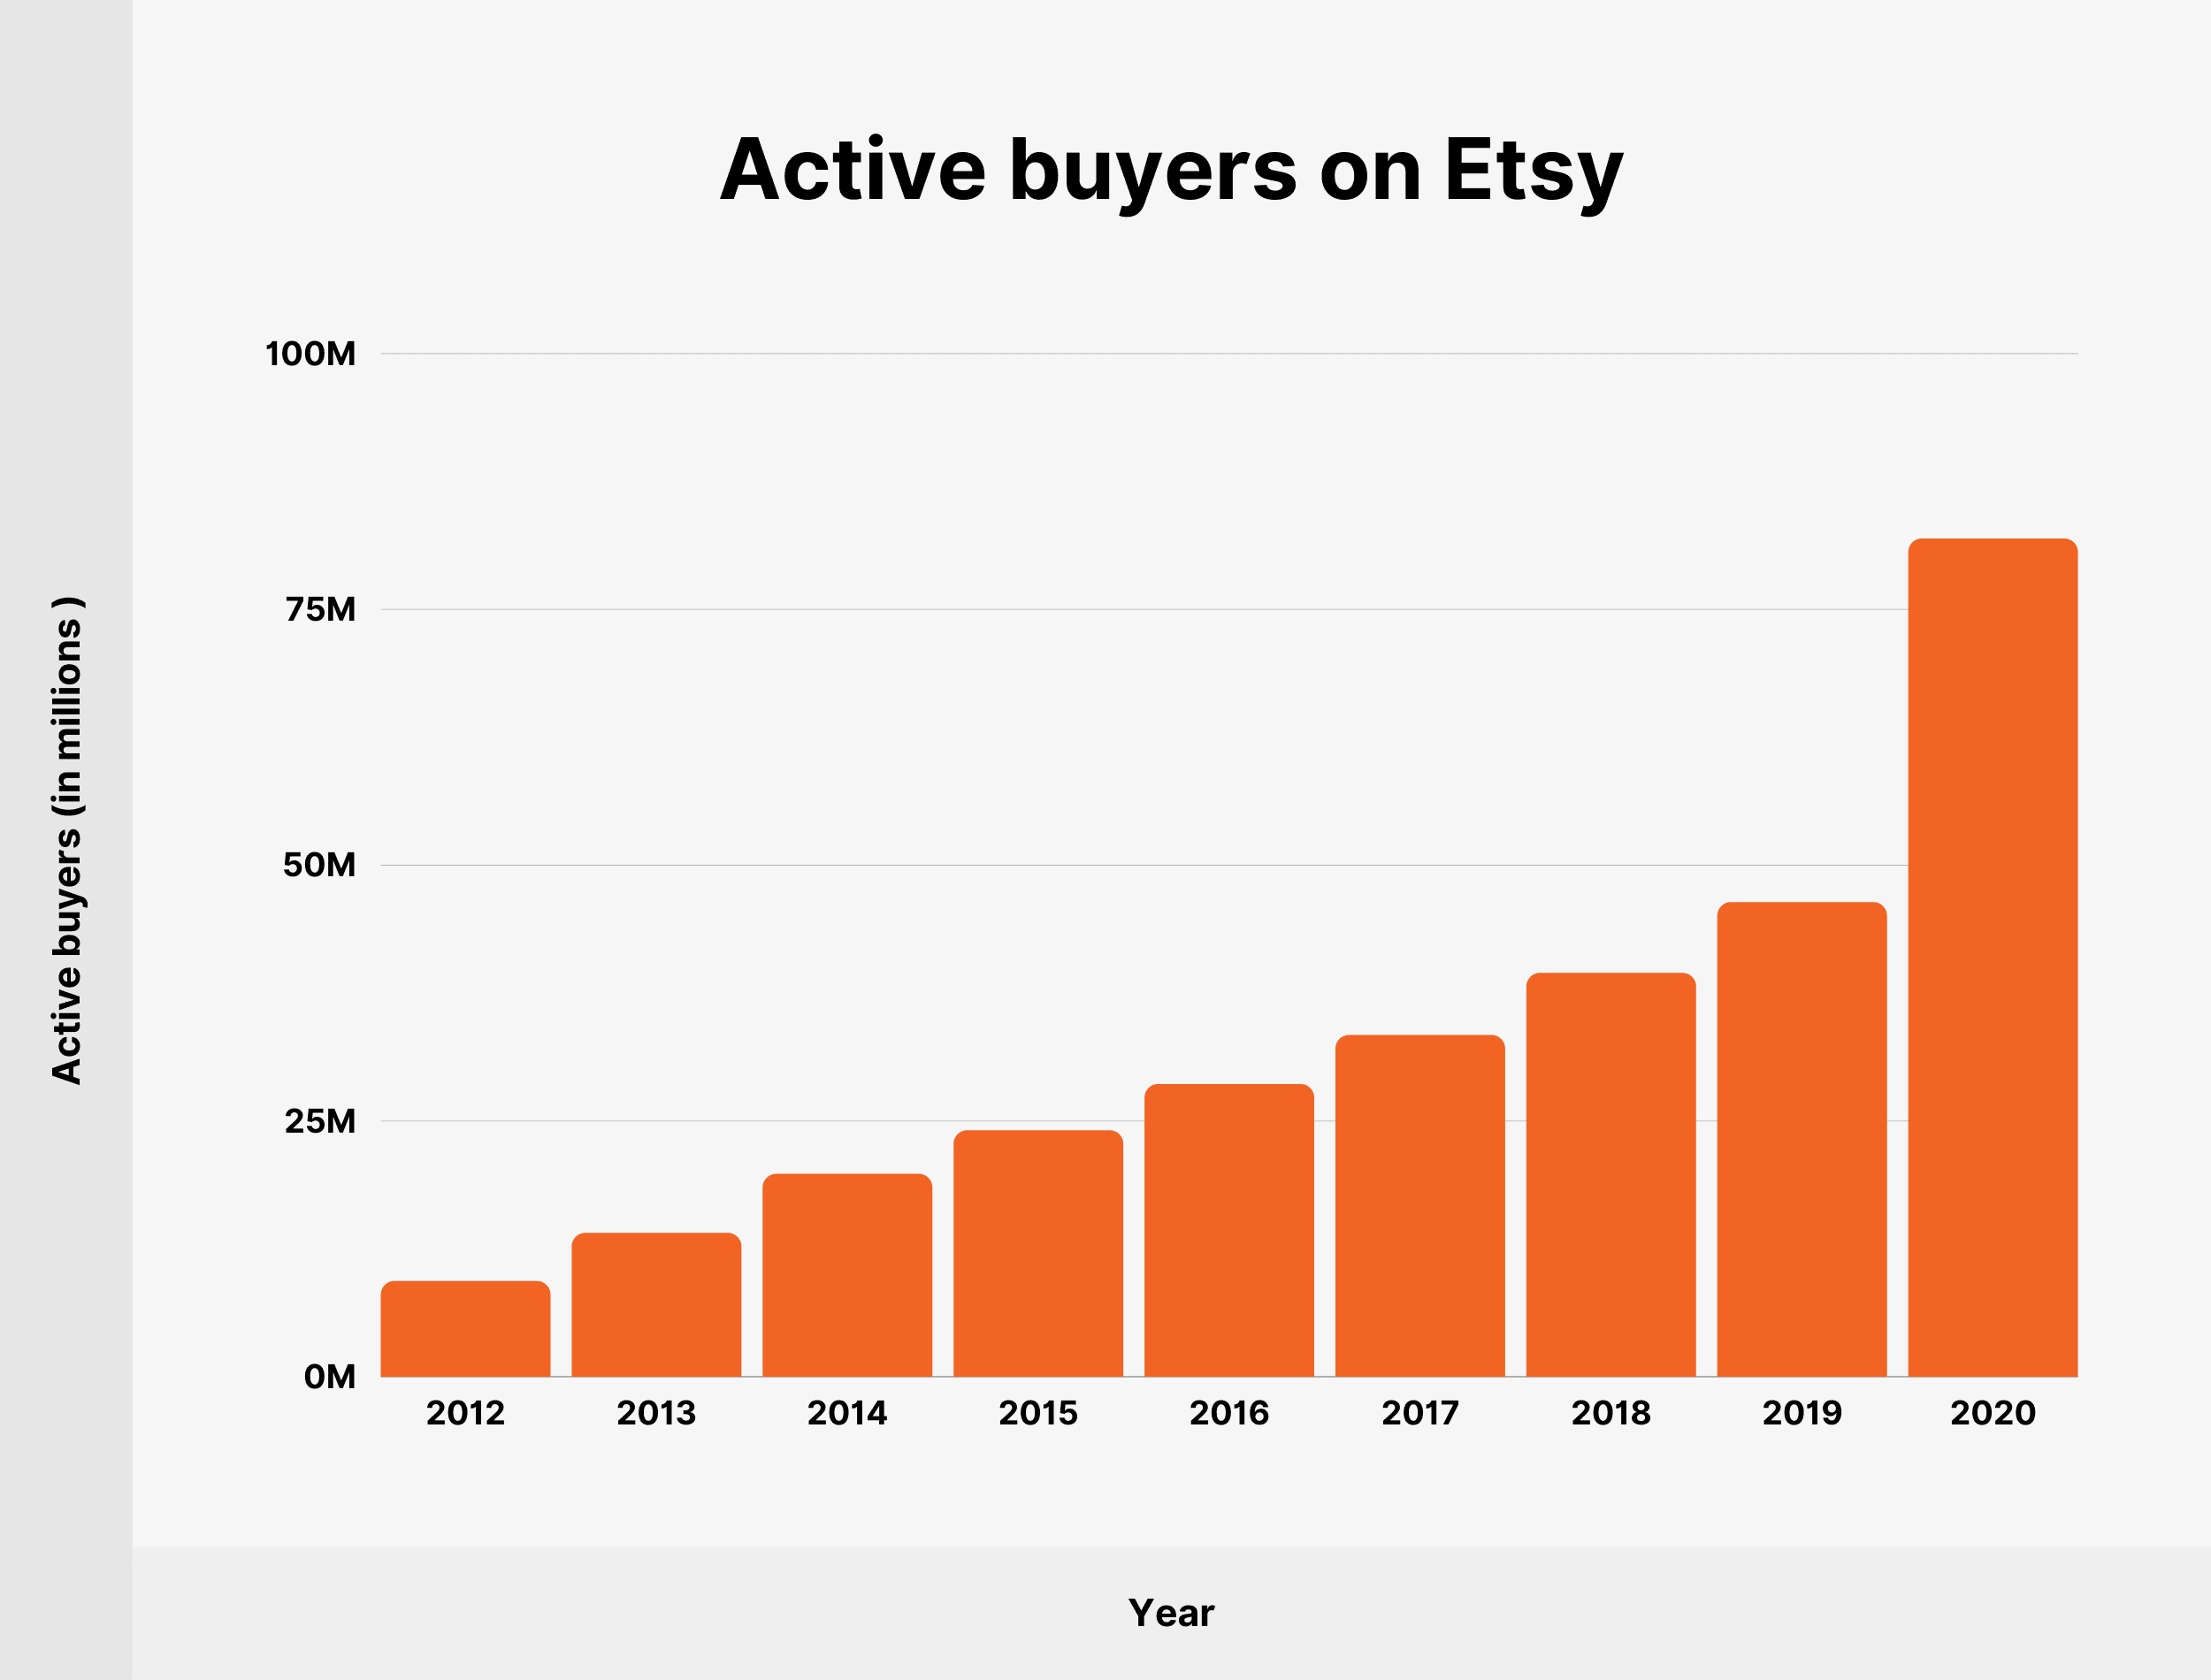 Active buyers on Etsy